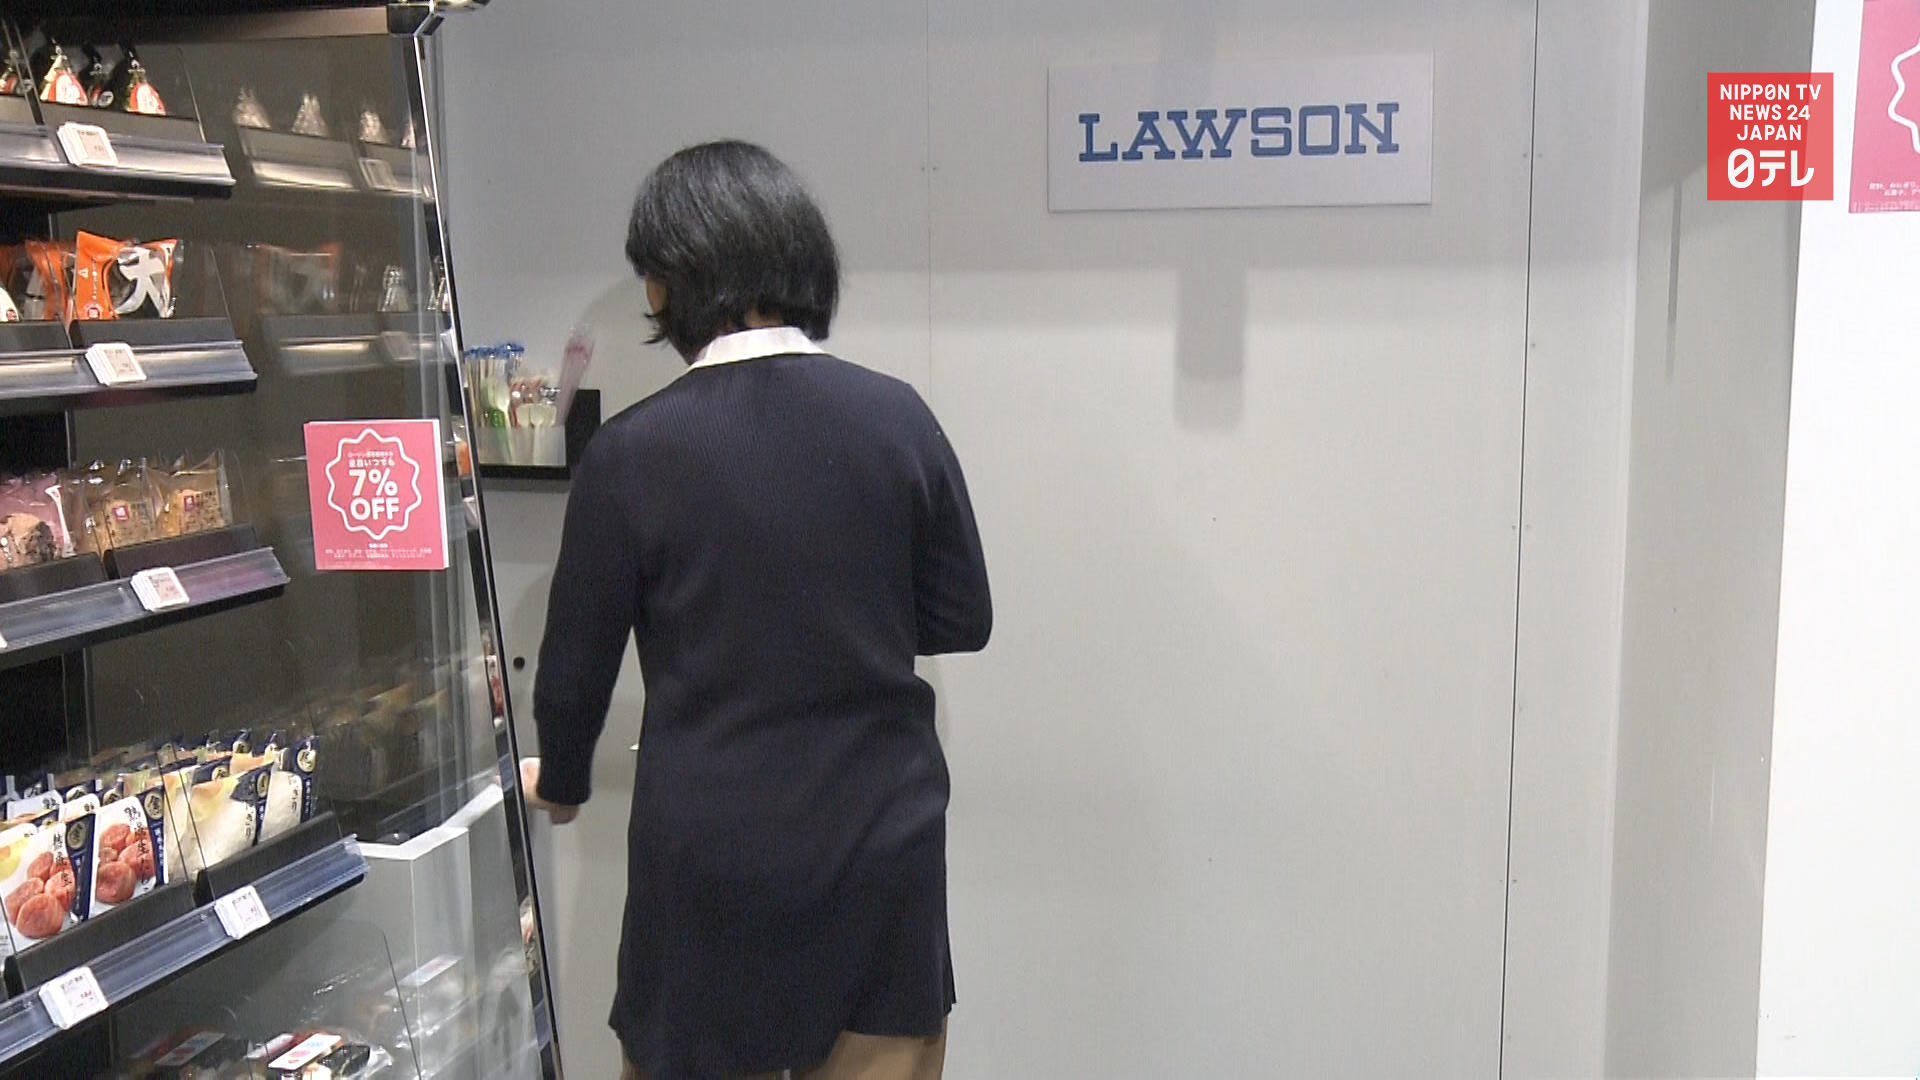 Lawson's first cash register-free store